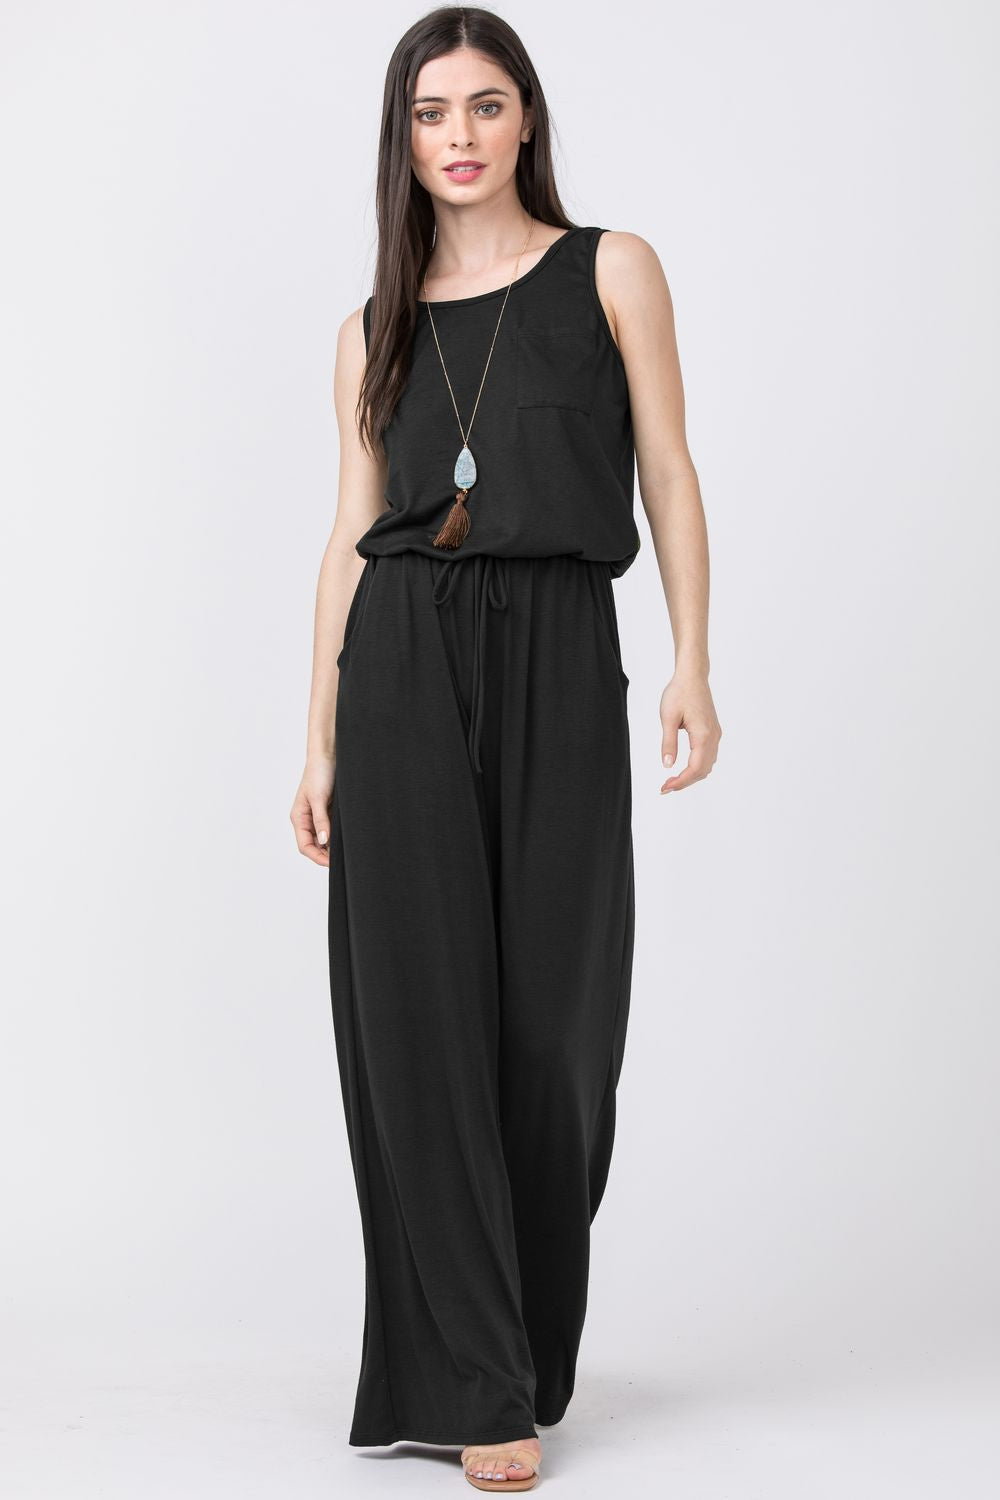 Black Sleeveless Drawstring Jumpsuit with Front Pocket